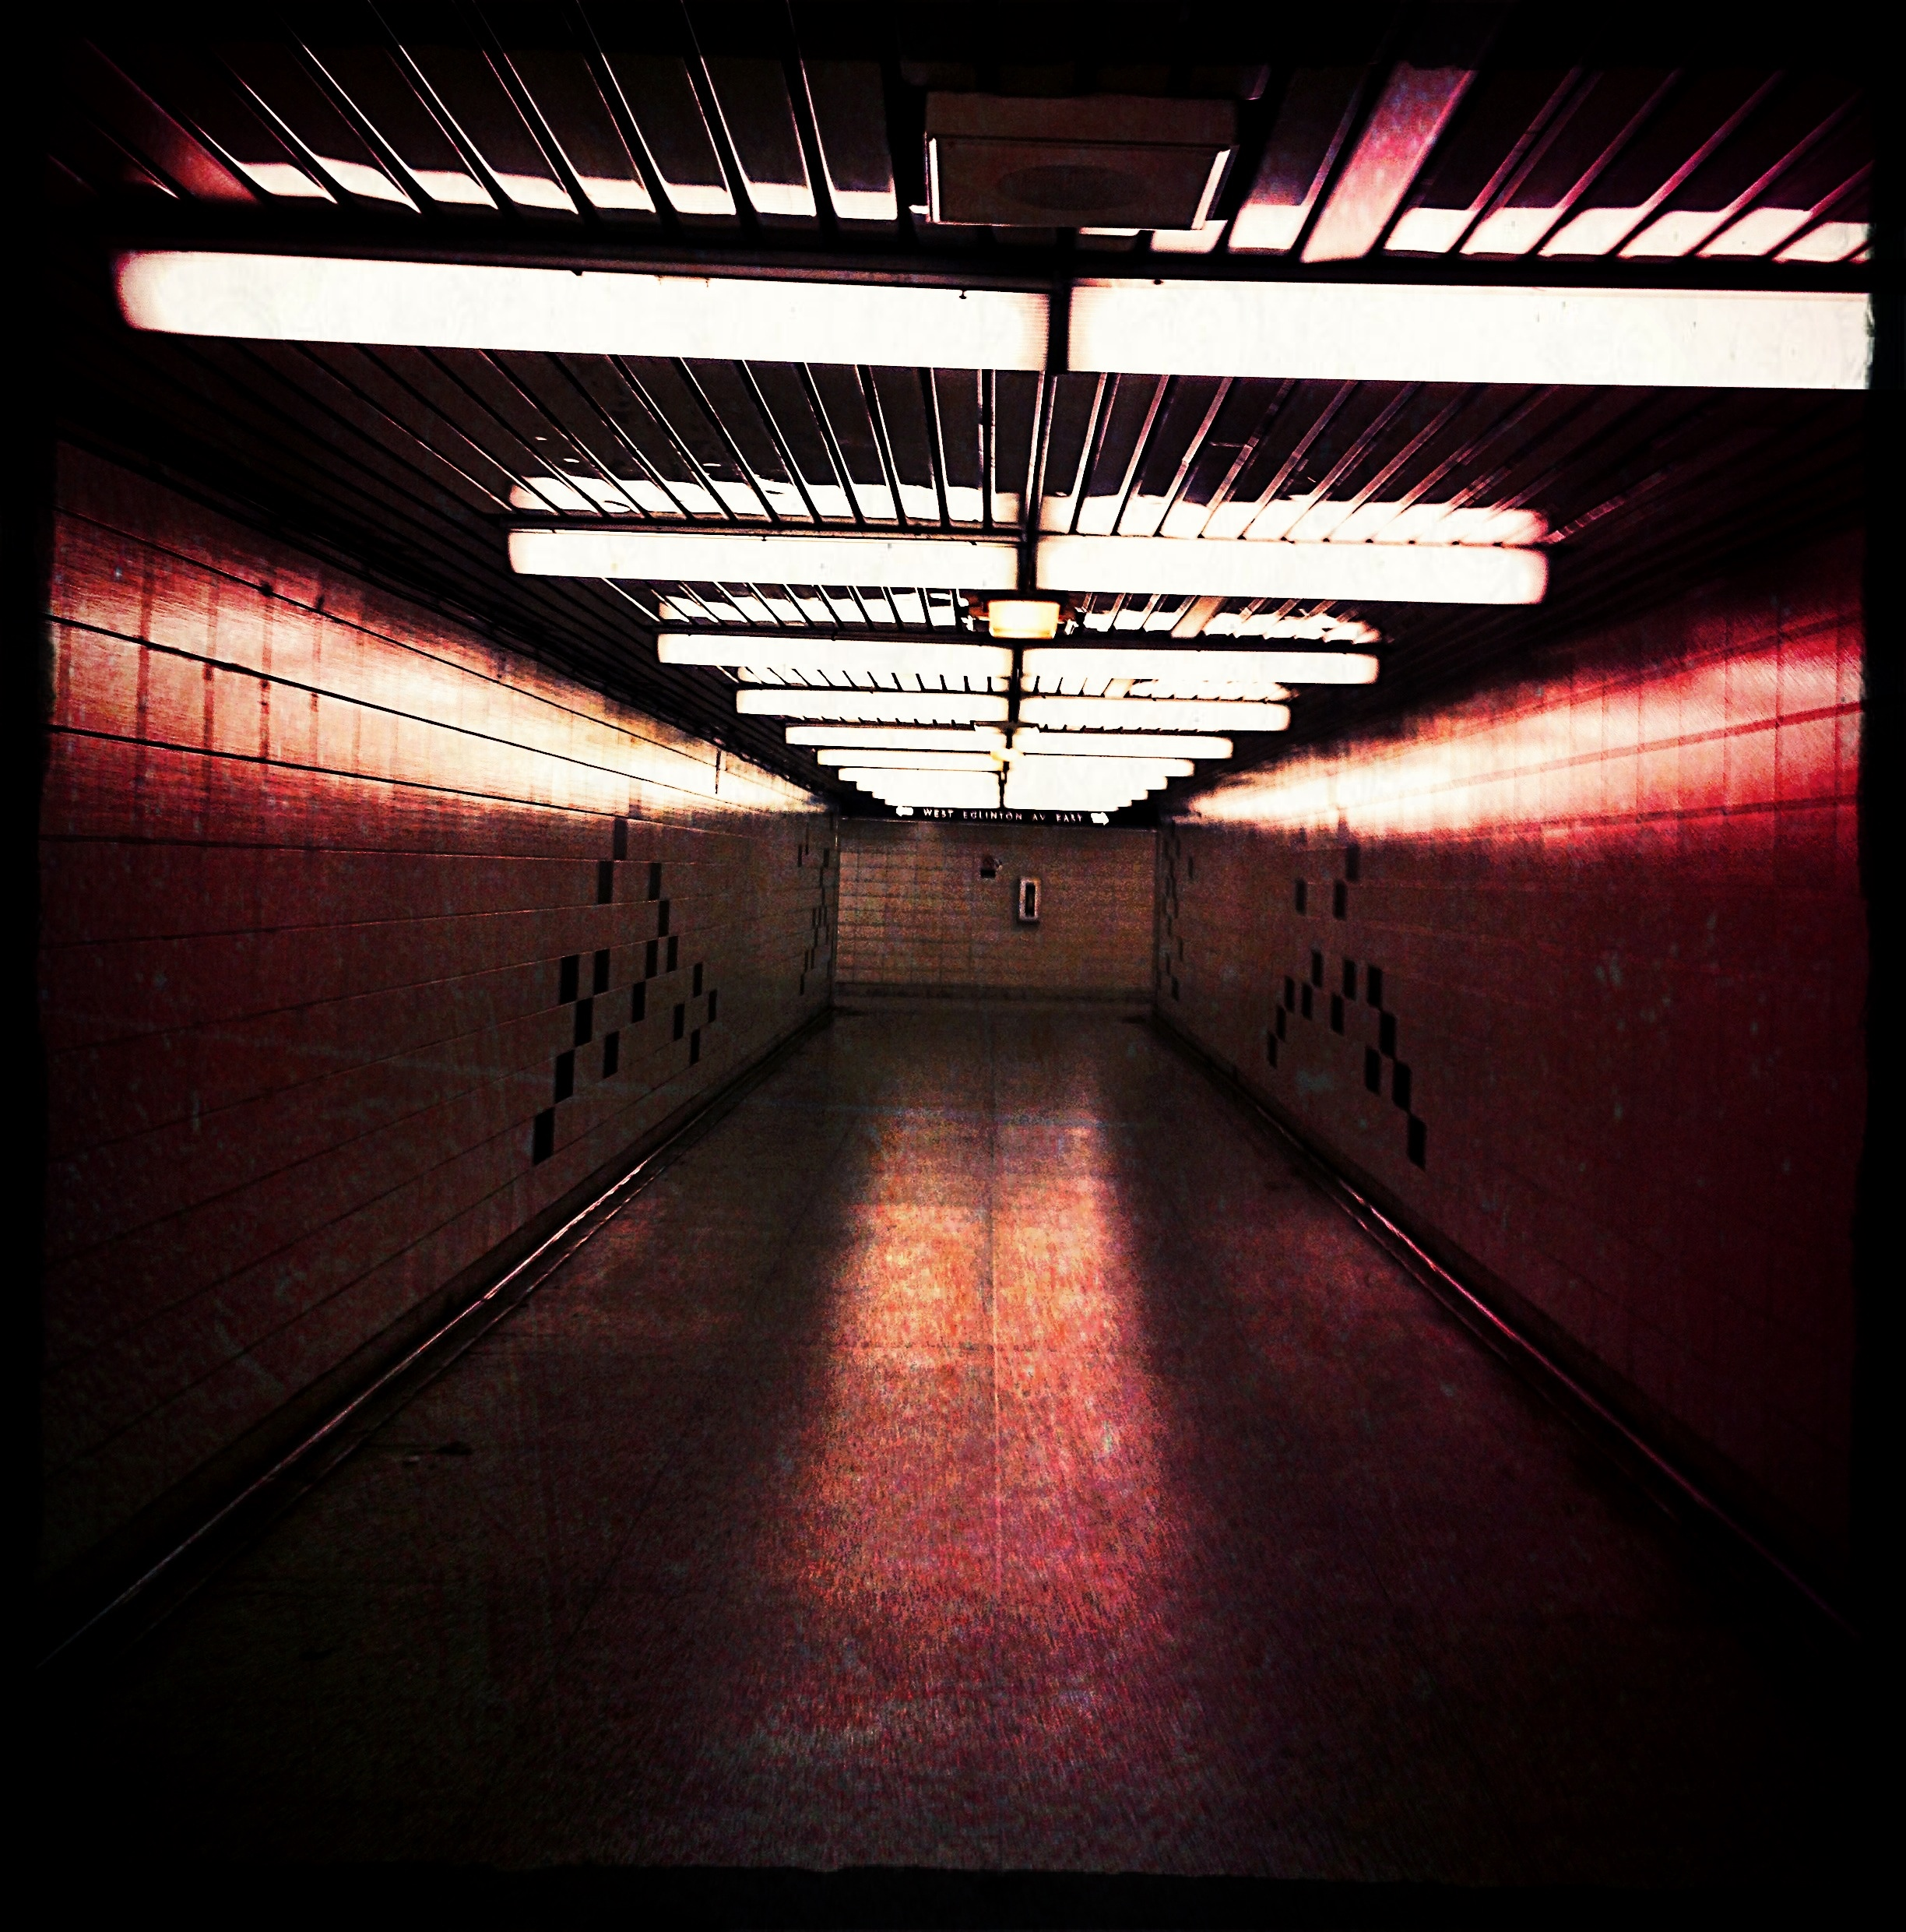 """Open-Up and Say Ahhhhh"" - Yonge-Eglinton pedestrian underpass, Toronto"